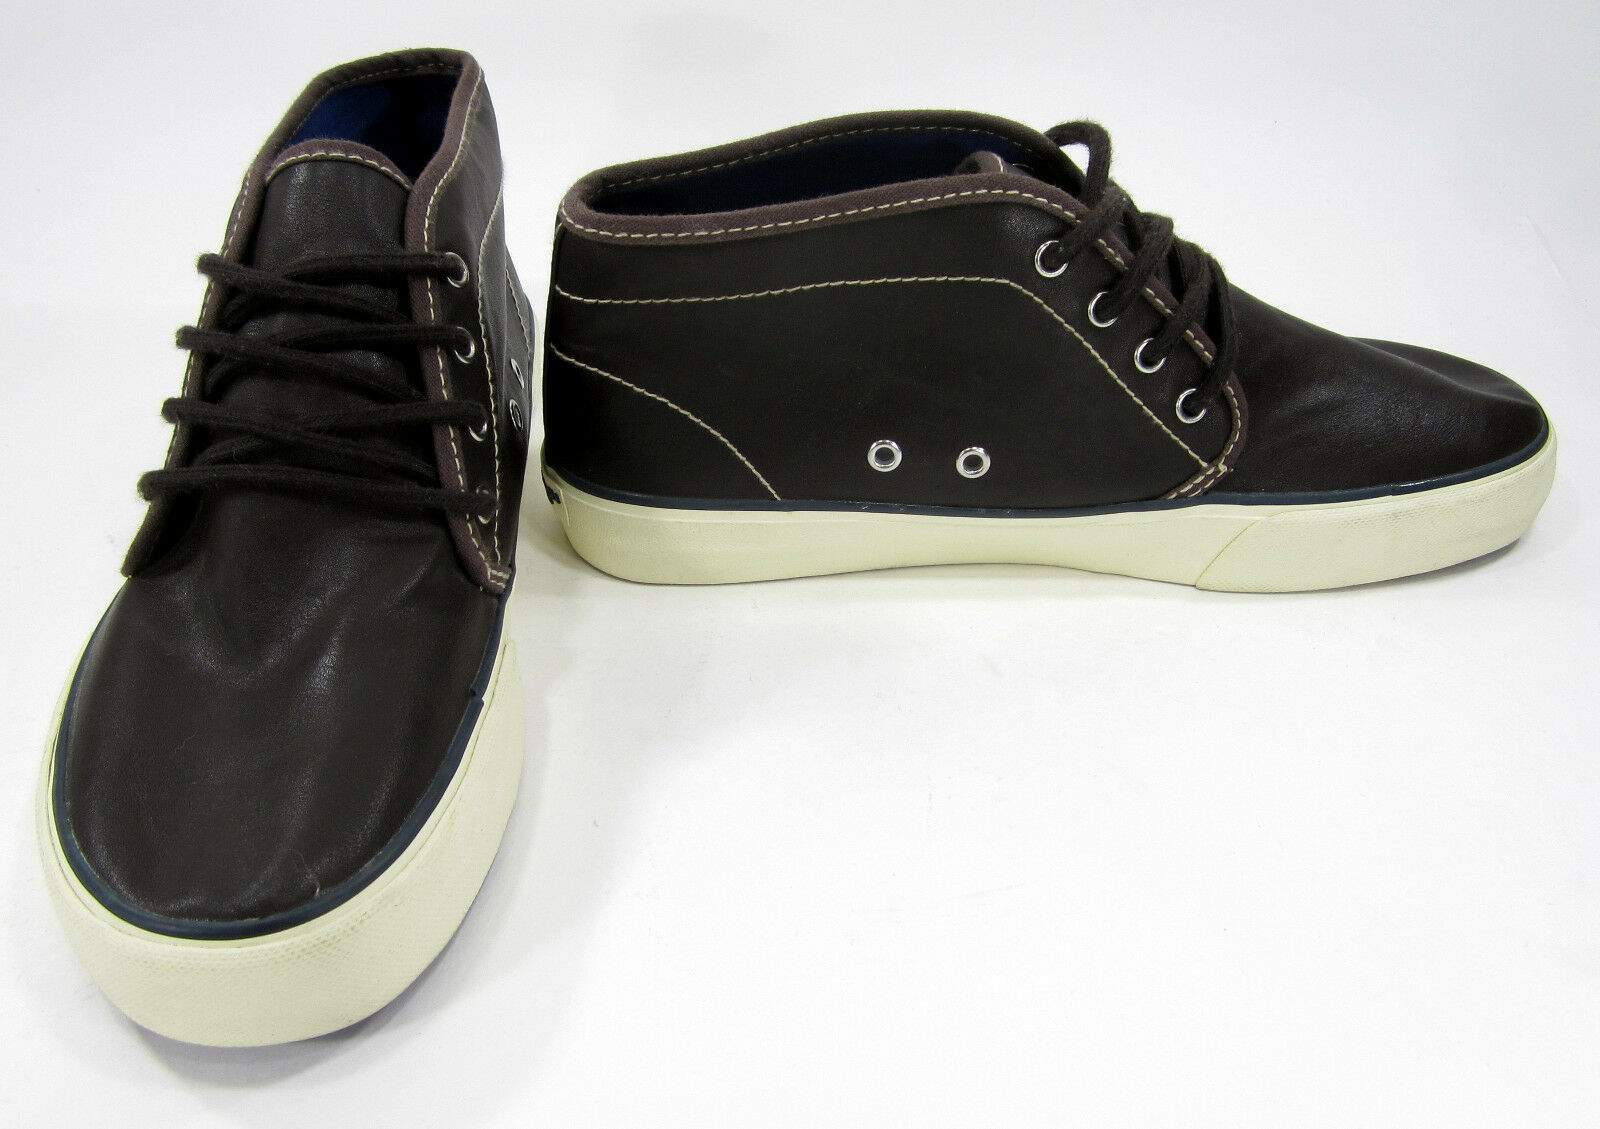 American Eagle Outfitters Shoes Chukka Chocolate Brown Sneakers Size 11